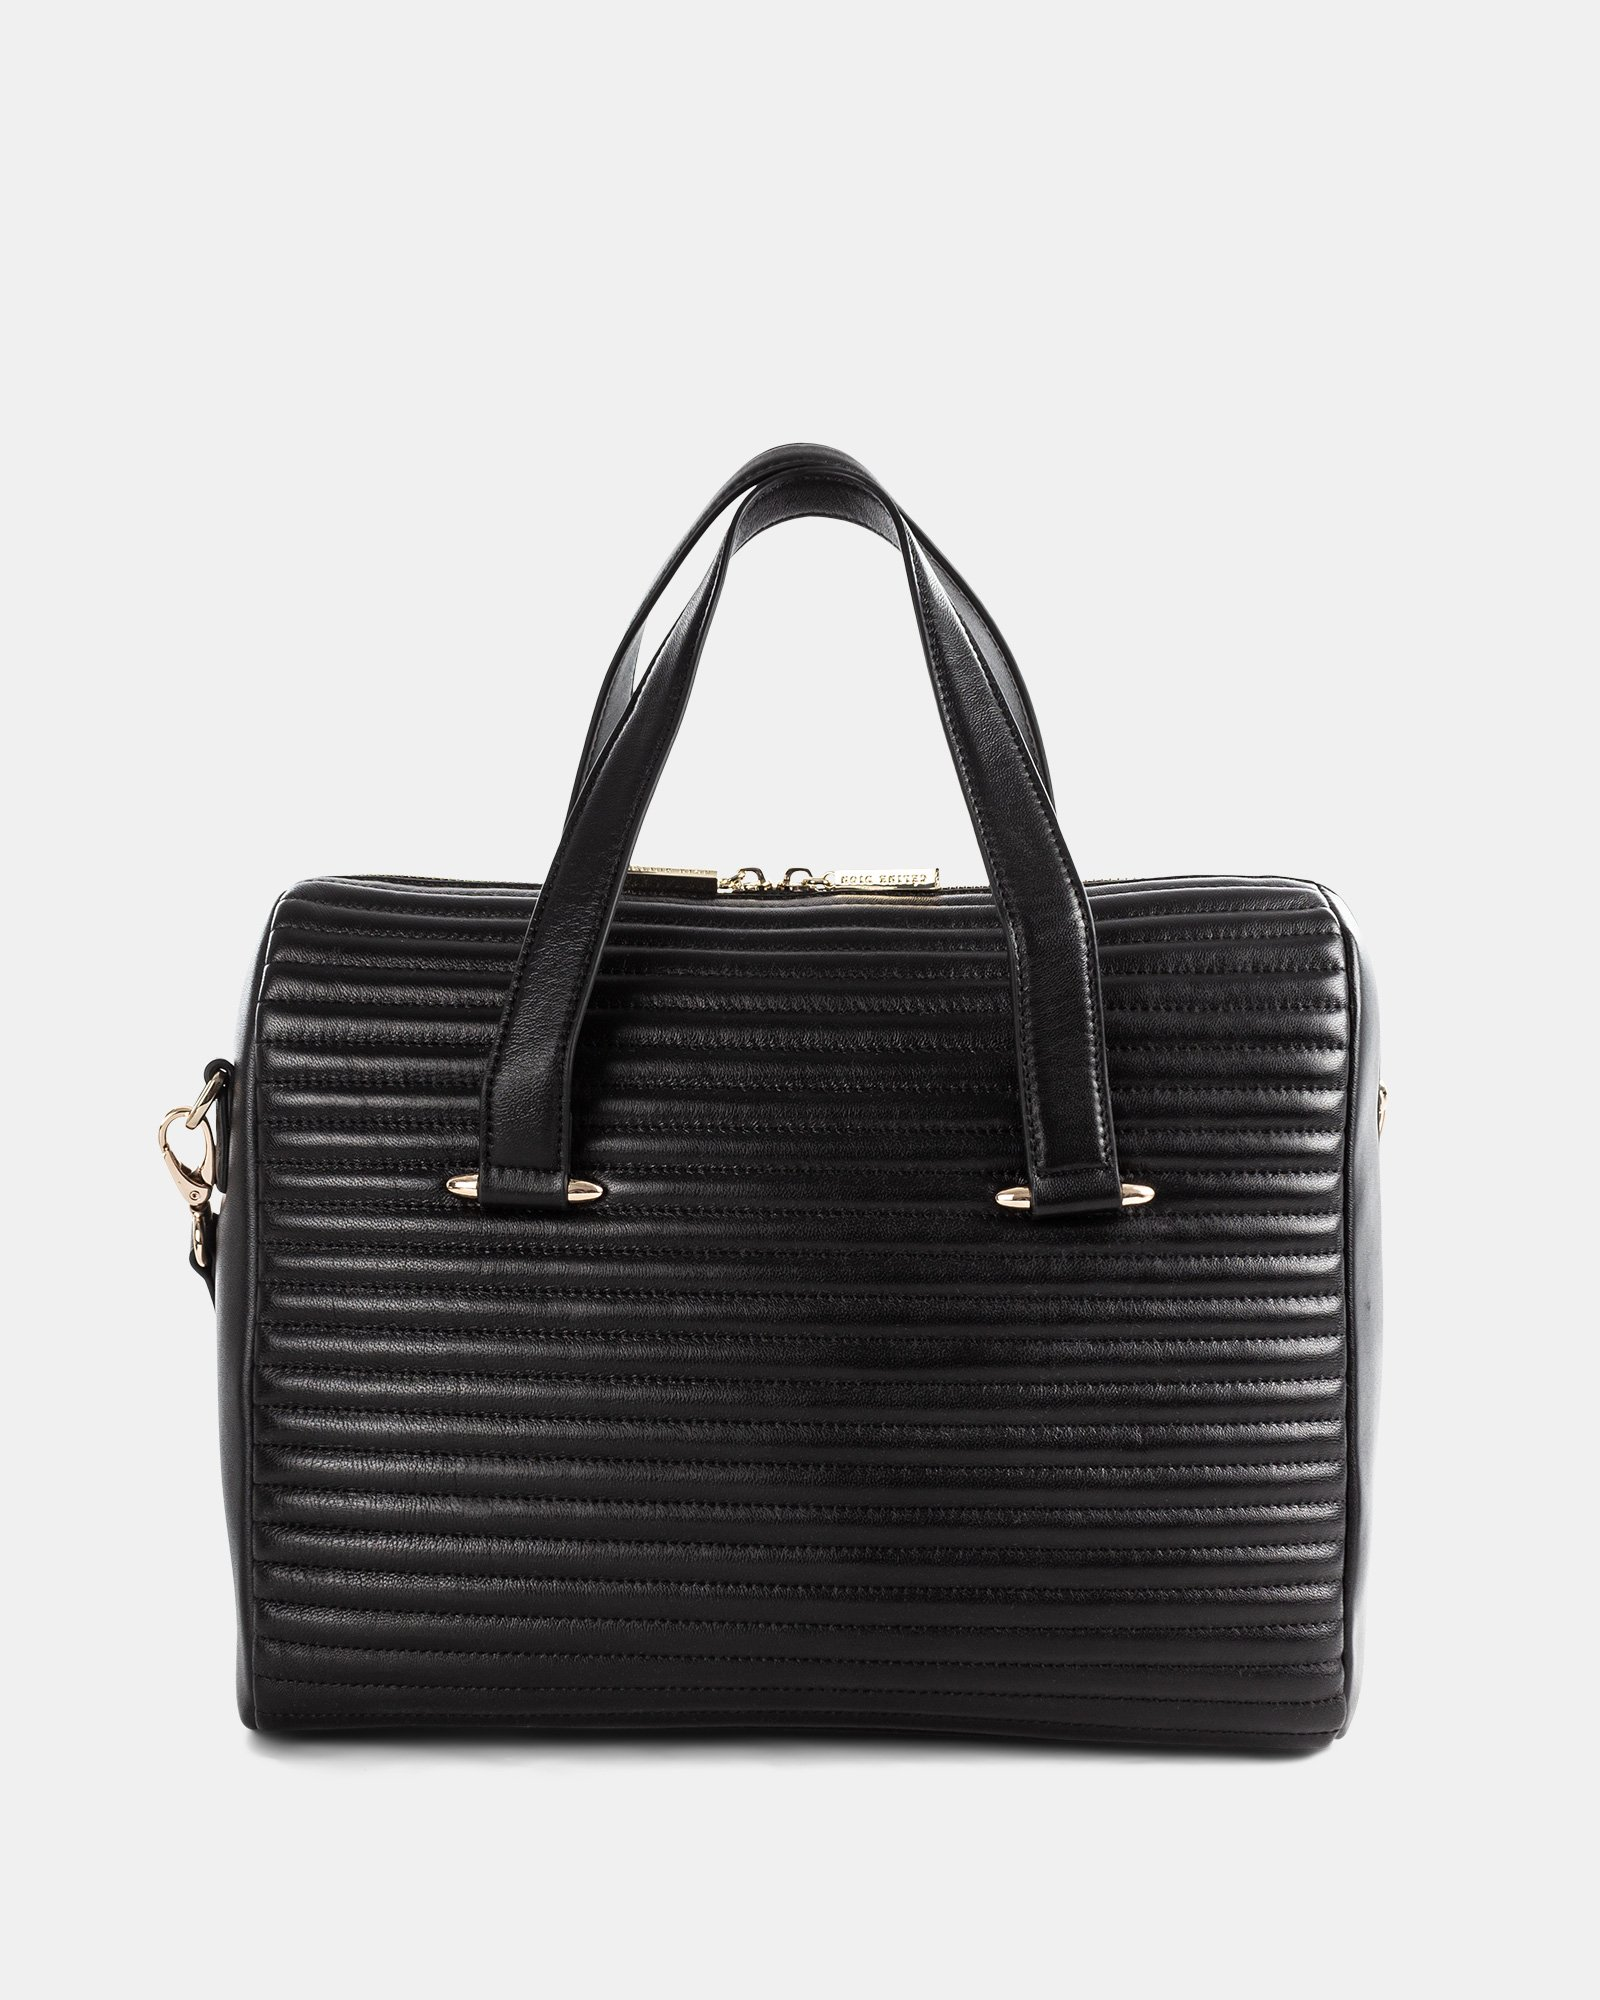 VIBRATO - LEATHER SATCHEL WITH Adjustable and removable shoulder strap - BLACK - Céline Dion - Zoom